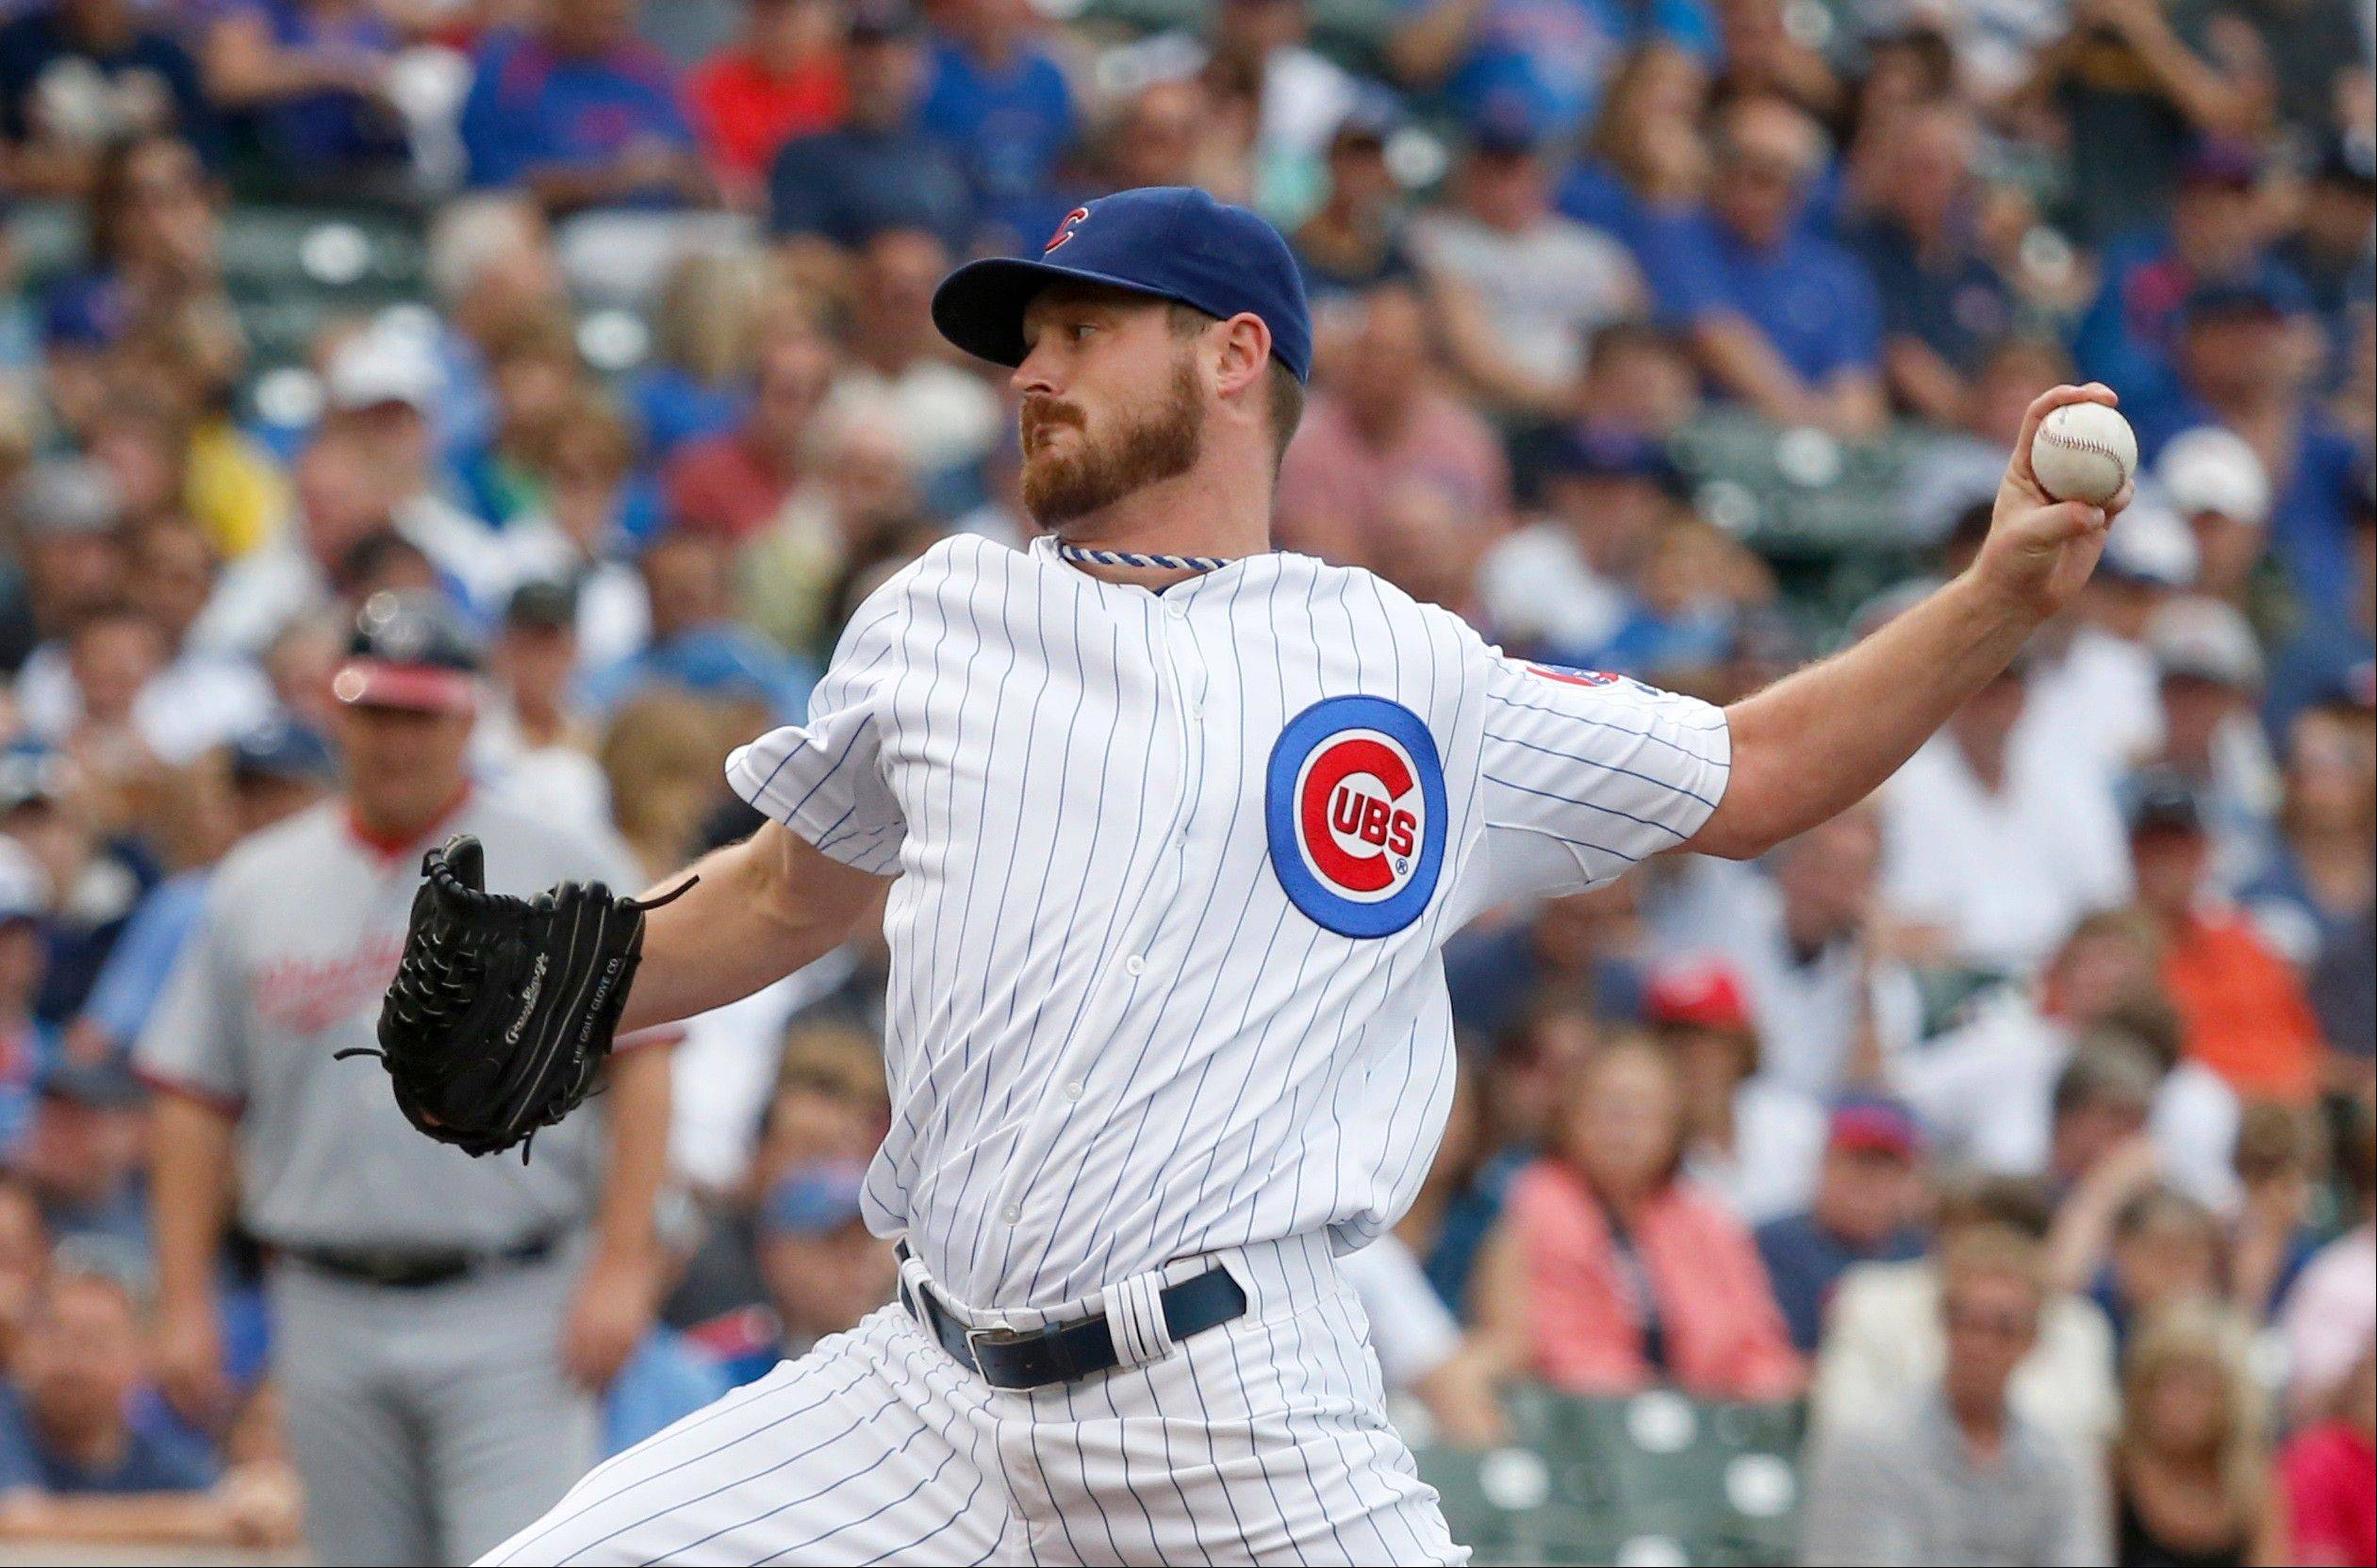 Travis Wood delivers during the first inning of a baseball game against the Washington Nationals on Thursday, Aug. 22, 2013, in Chicago.